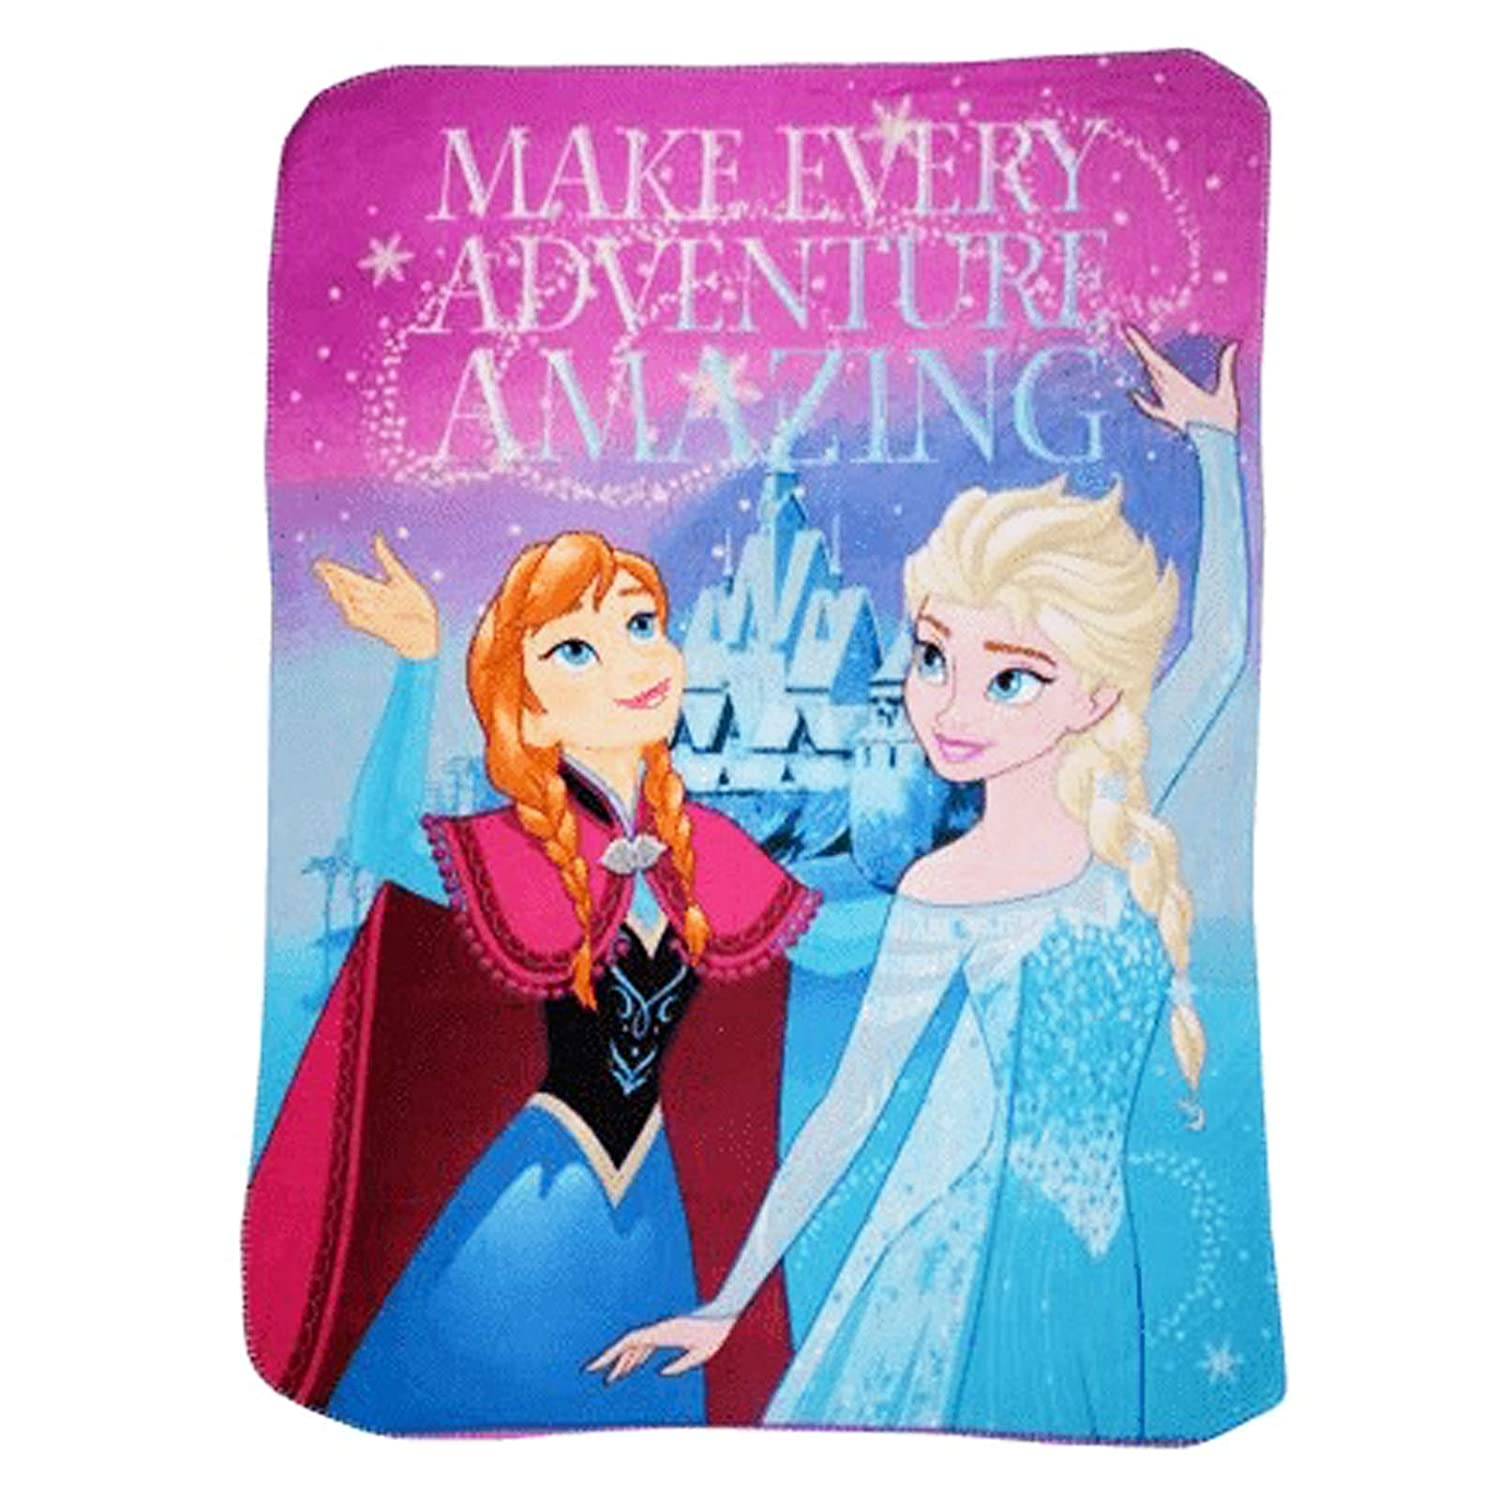 """Ideal for Baby Gift 45/""""x60/"""" Soft /& Warm Breathable Fabric Nap Mat 45/"""" x 60/"""" Collectible Throw for Toddlers Disney Frozen Kids Blankets /& Throws /""""Make Every Adventure Amazing/"""" Fleece Blanket"""